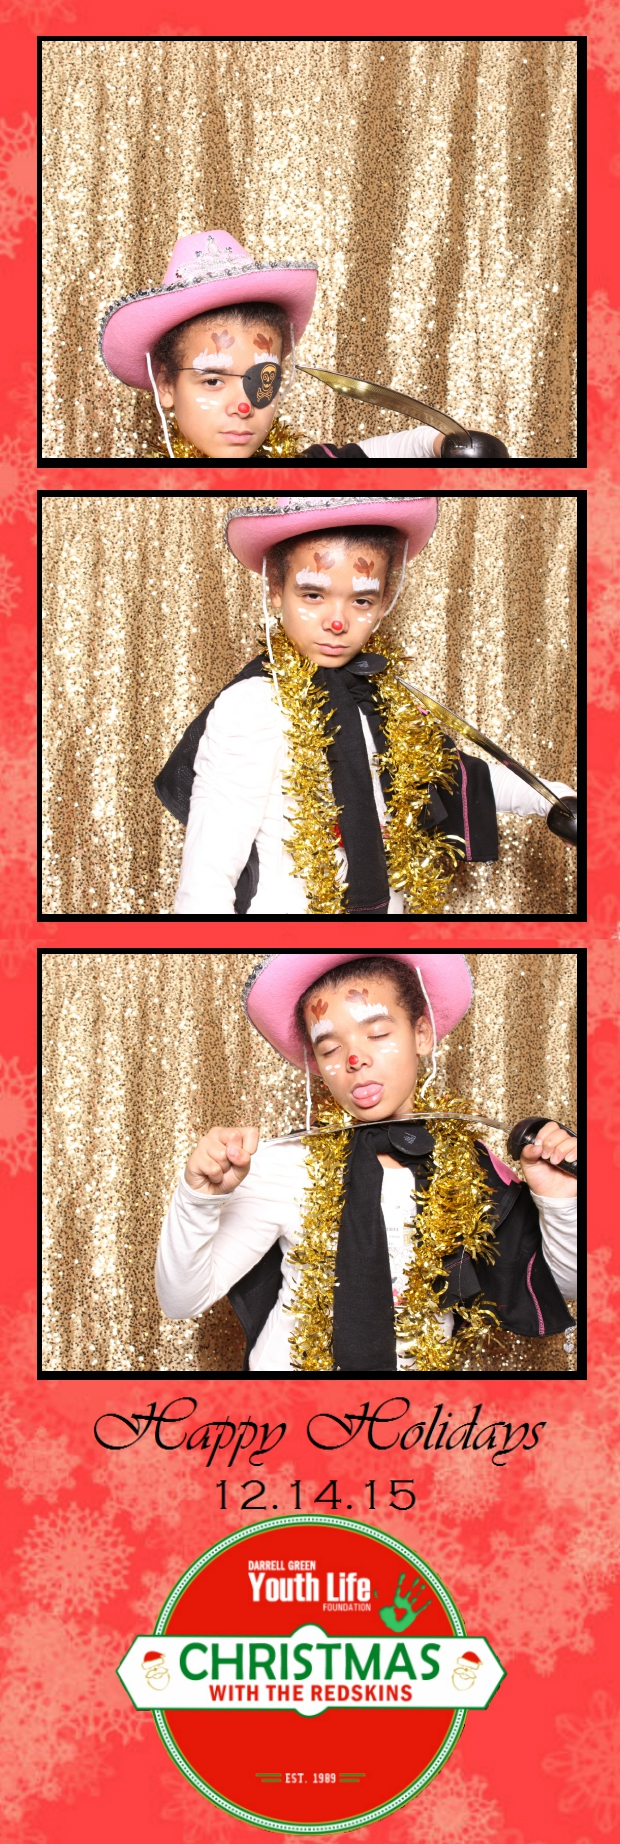 Guest House Events Photo Booth DGYLF Strips (46).jpg